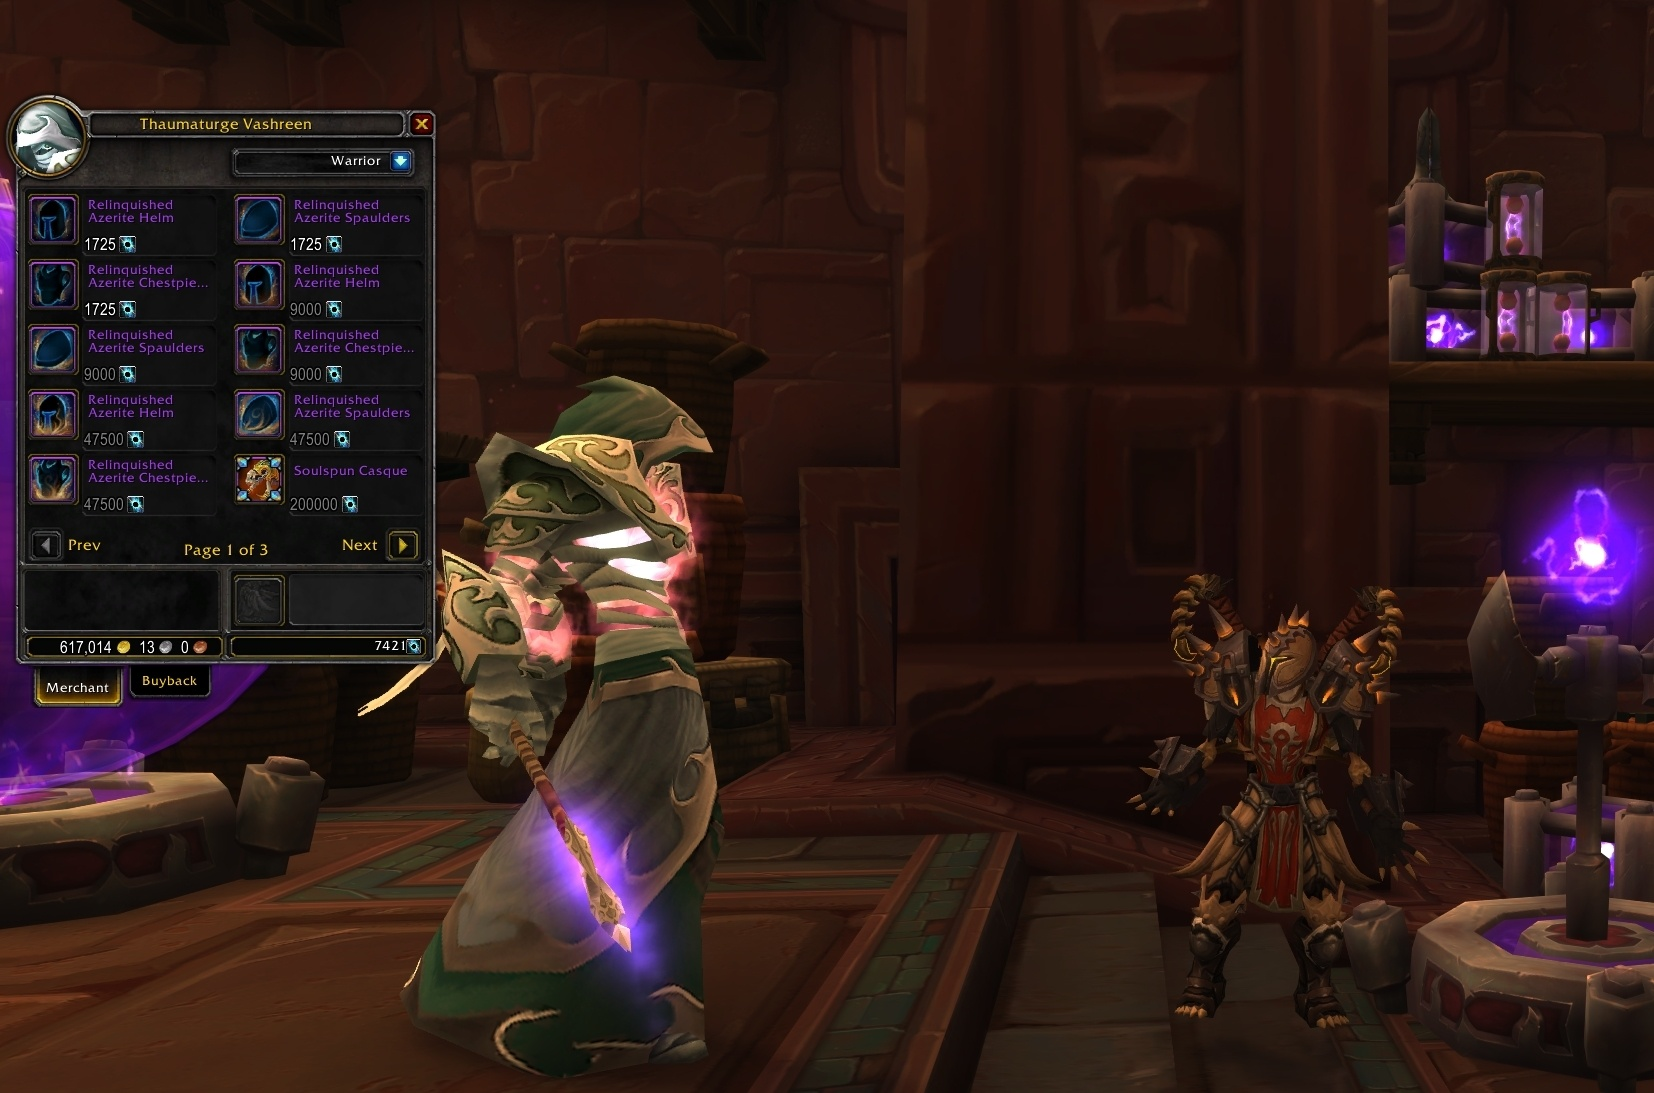 Missing Titan Residuum Pieces and Blizzard's Selective Refund Policy